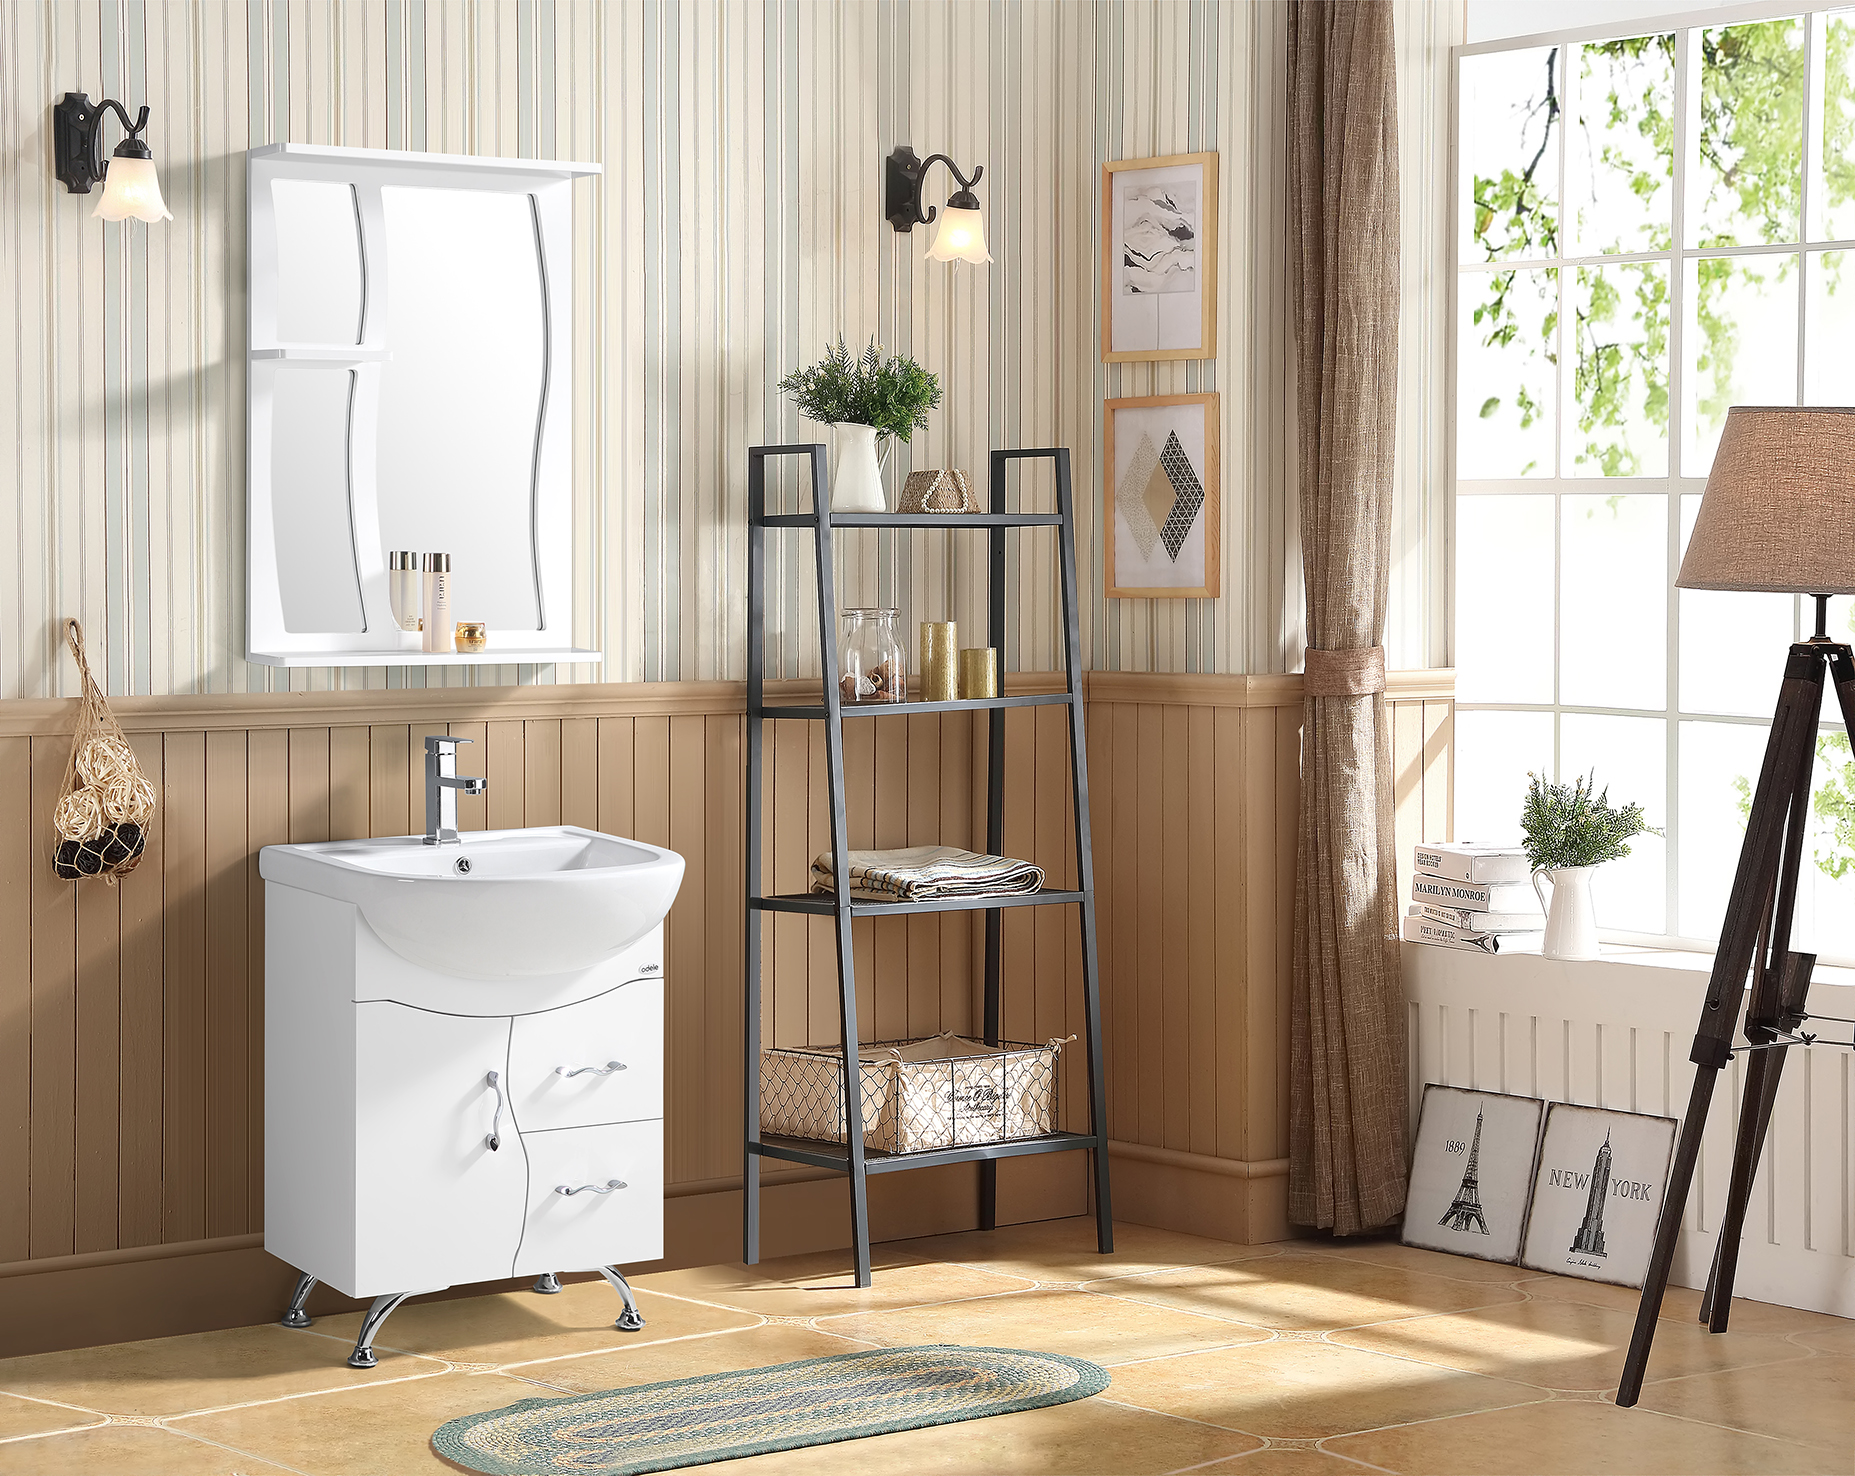 Verone Bath Vanity in White Colour by HomeTown